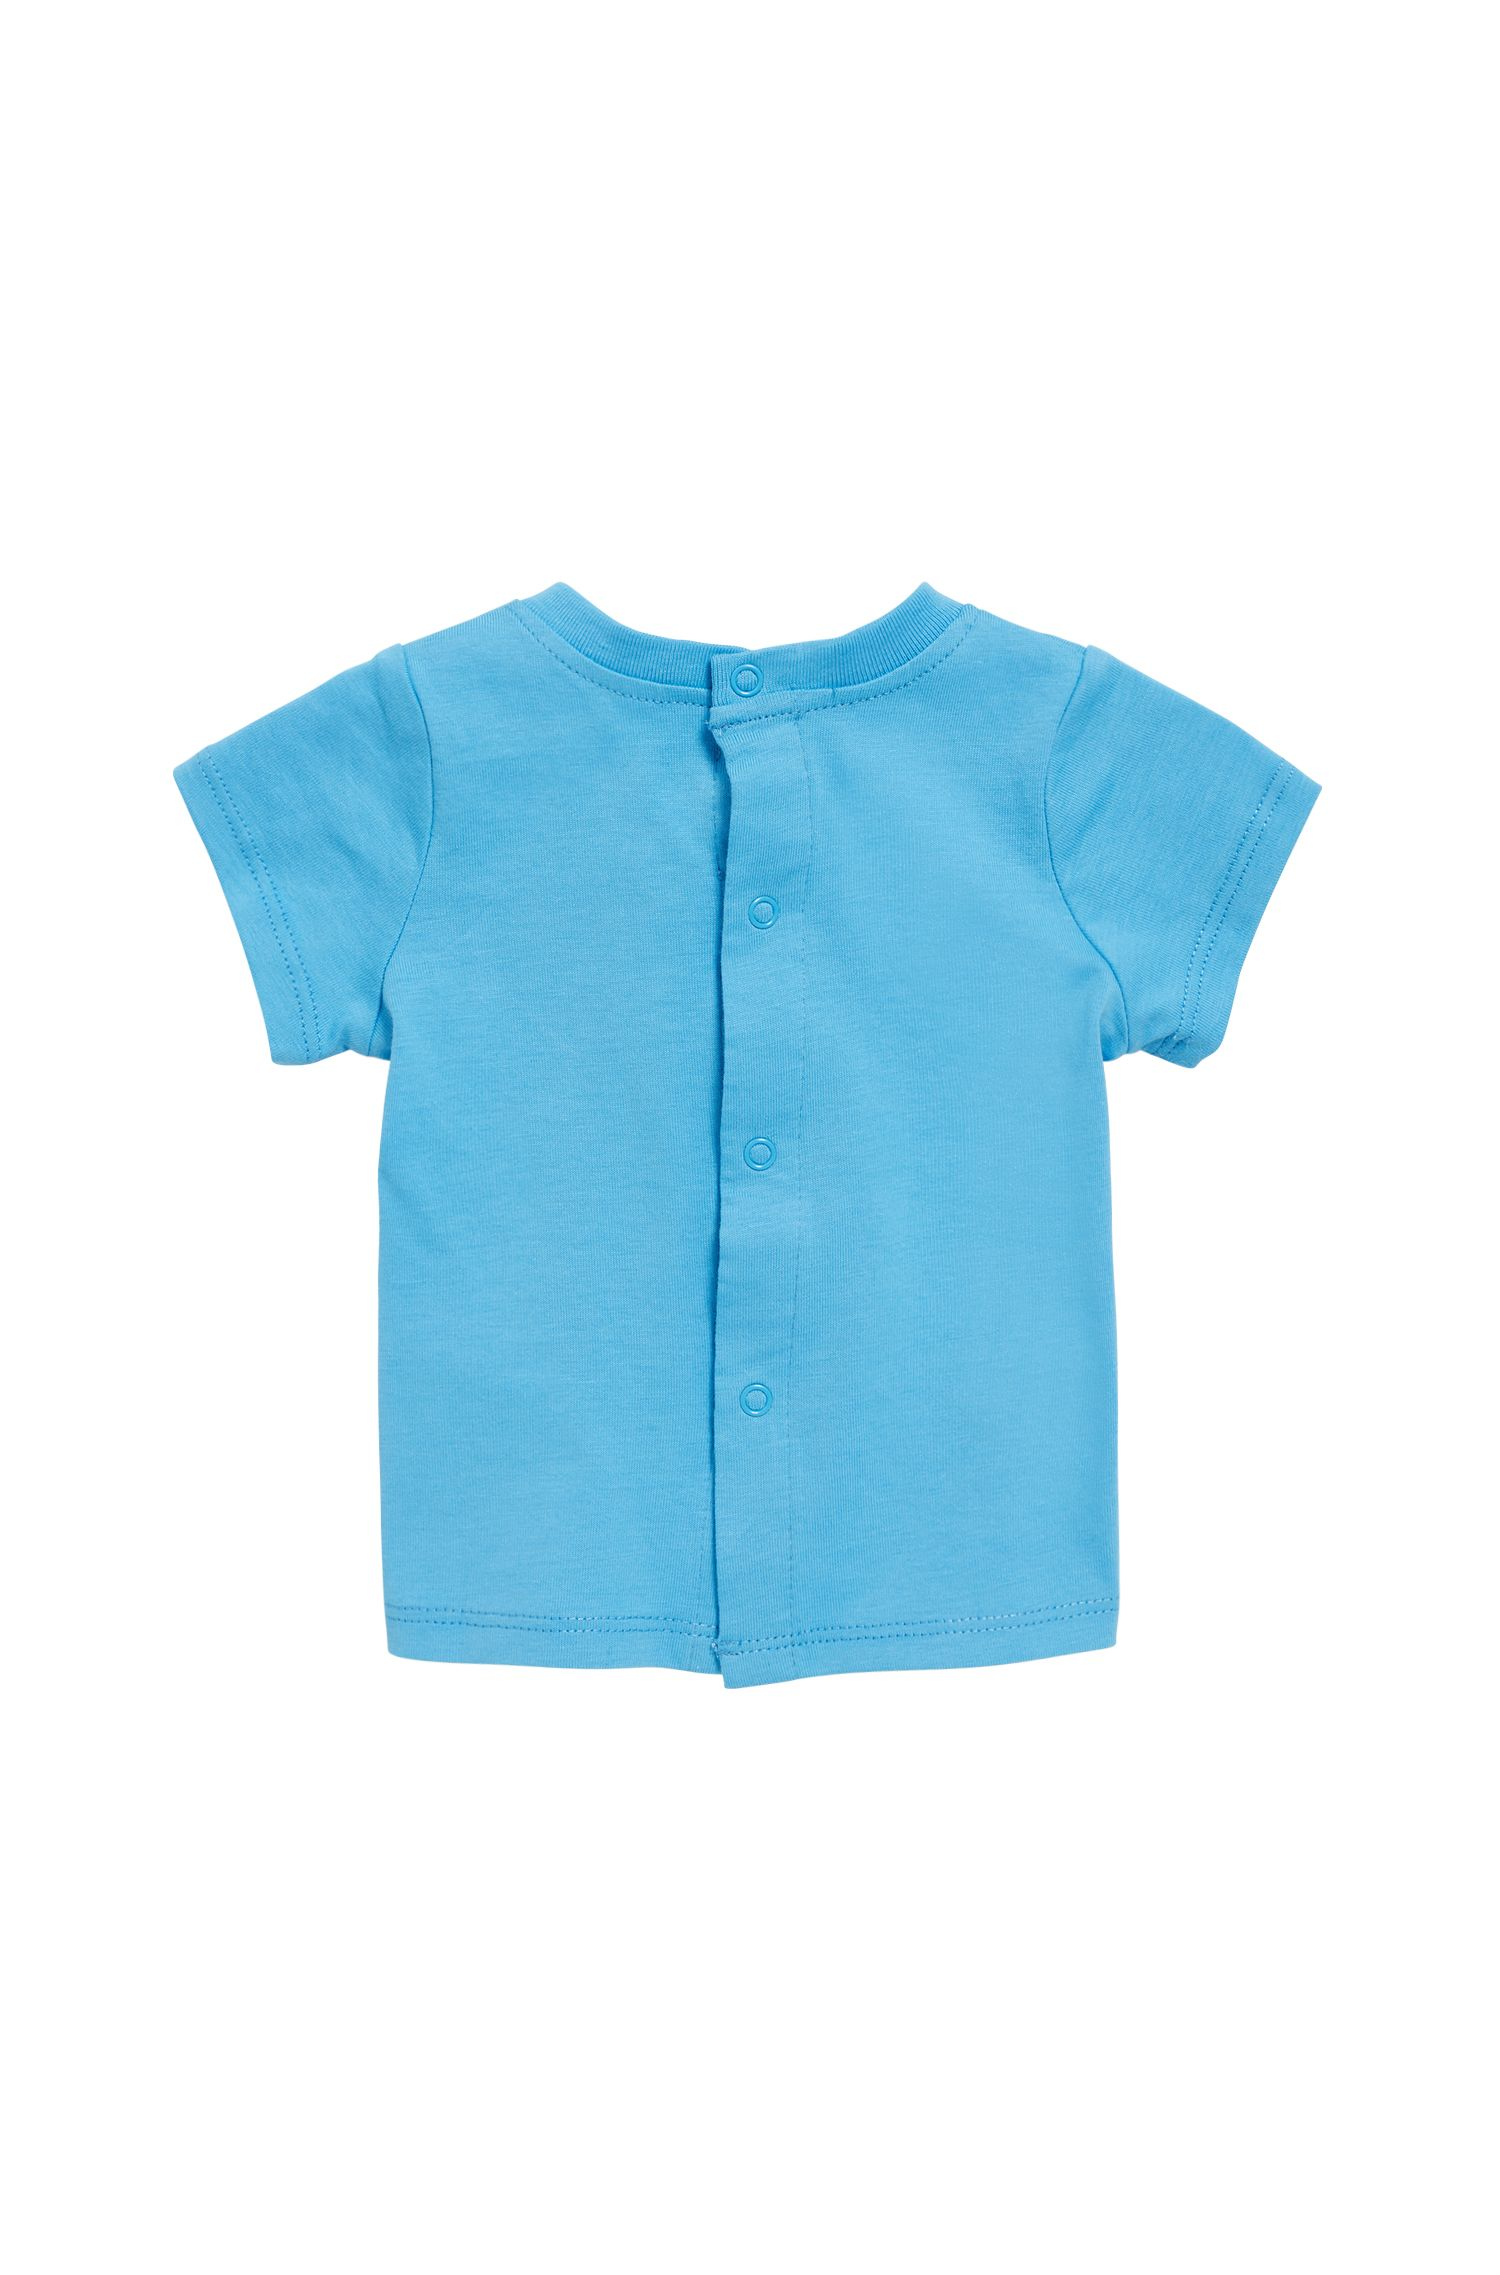 Baby logo T-shirt in pure cotton jersey